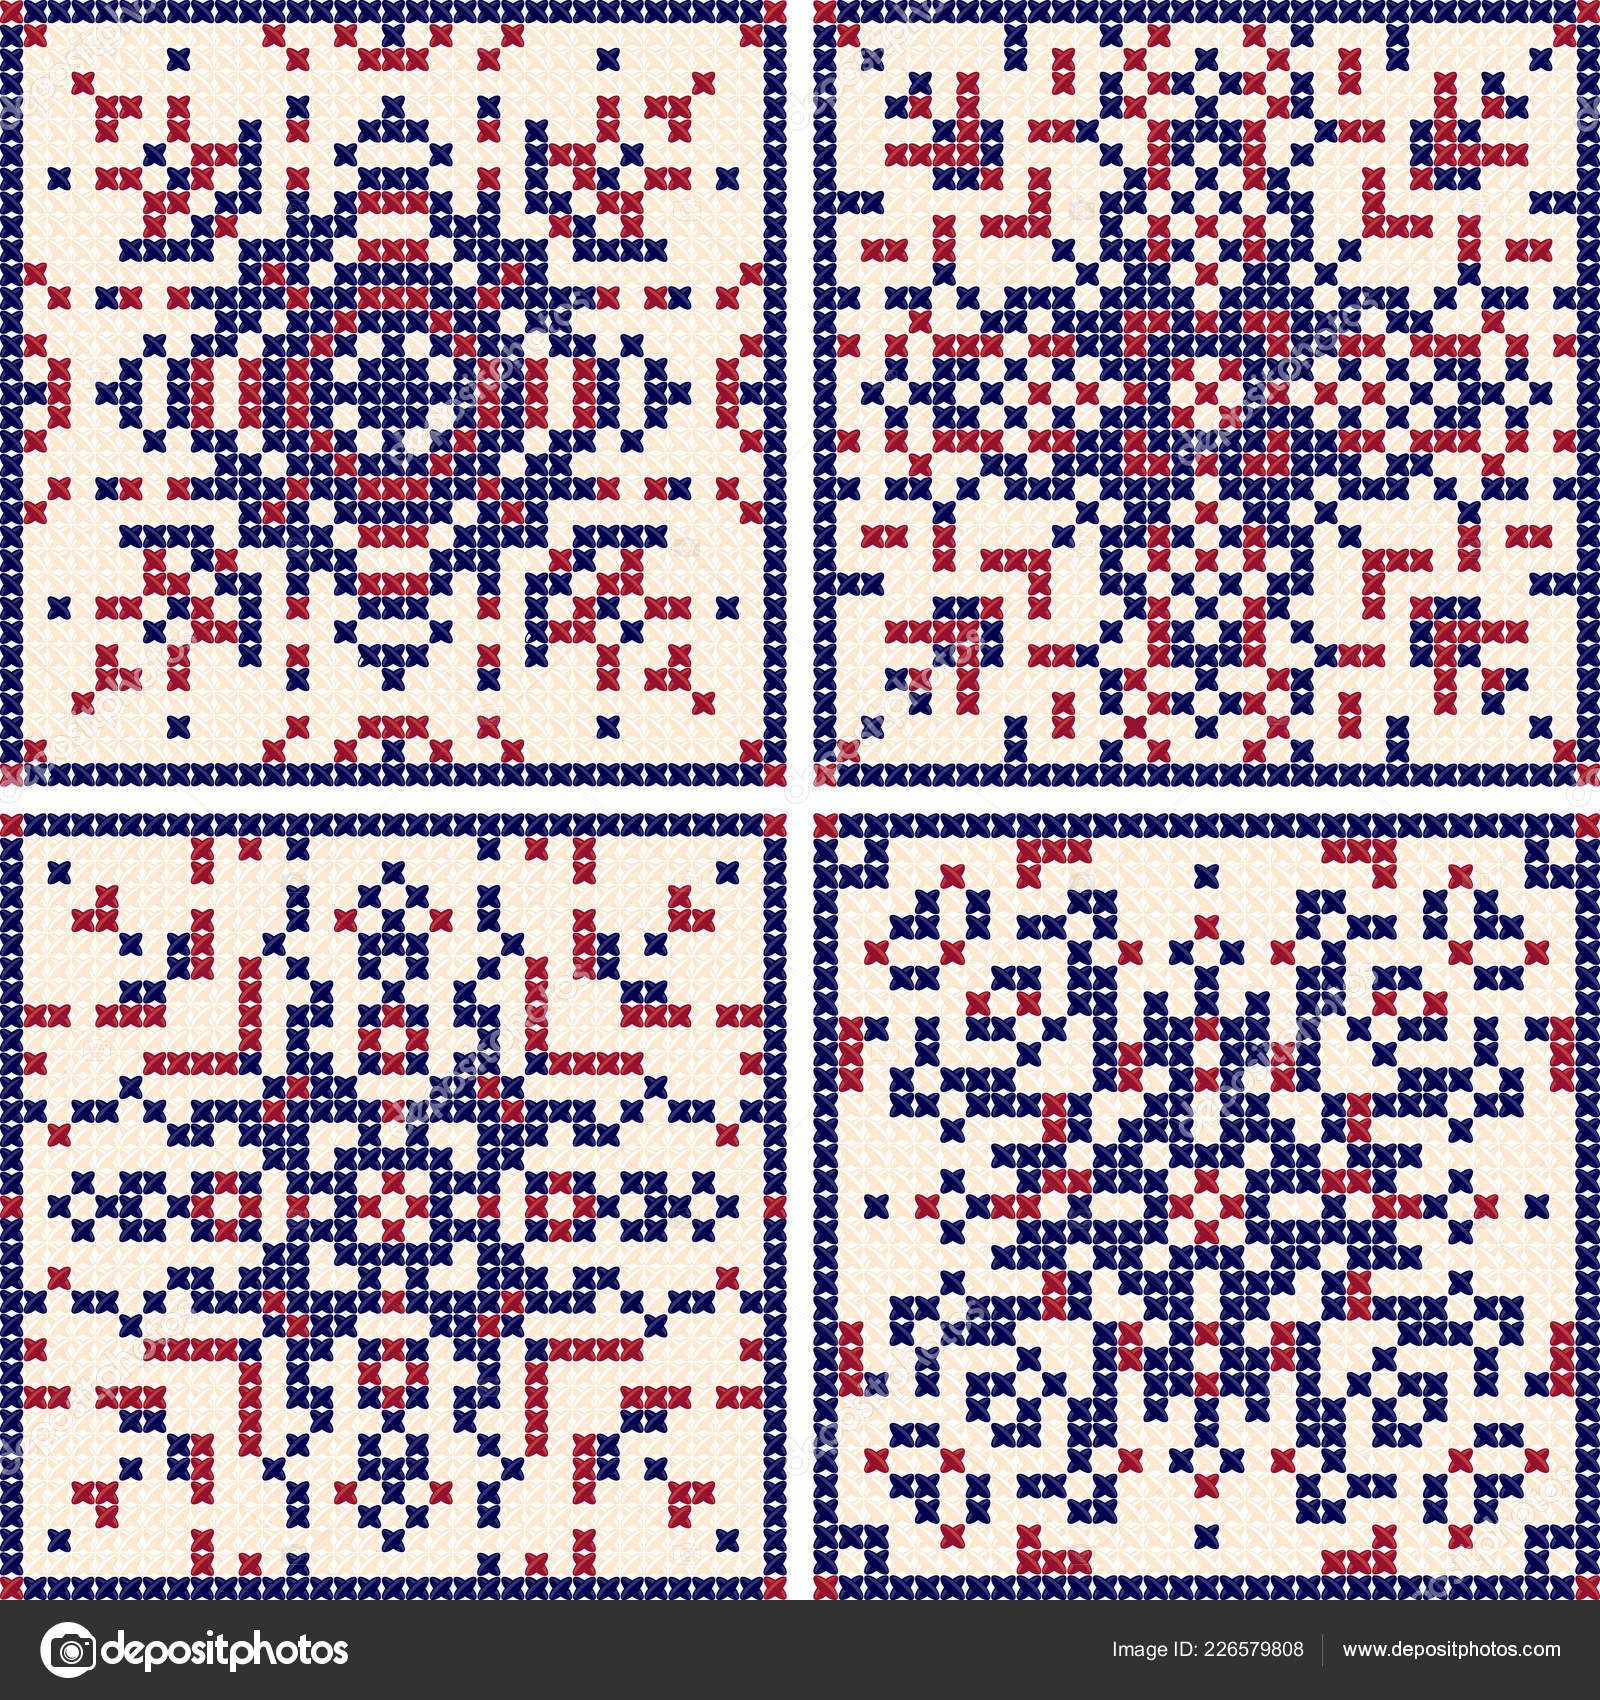 Scandinavian Embroidery Patterns Pattern Cross Stitch Set Scandinavian Patterns Patterns For